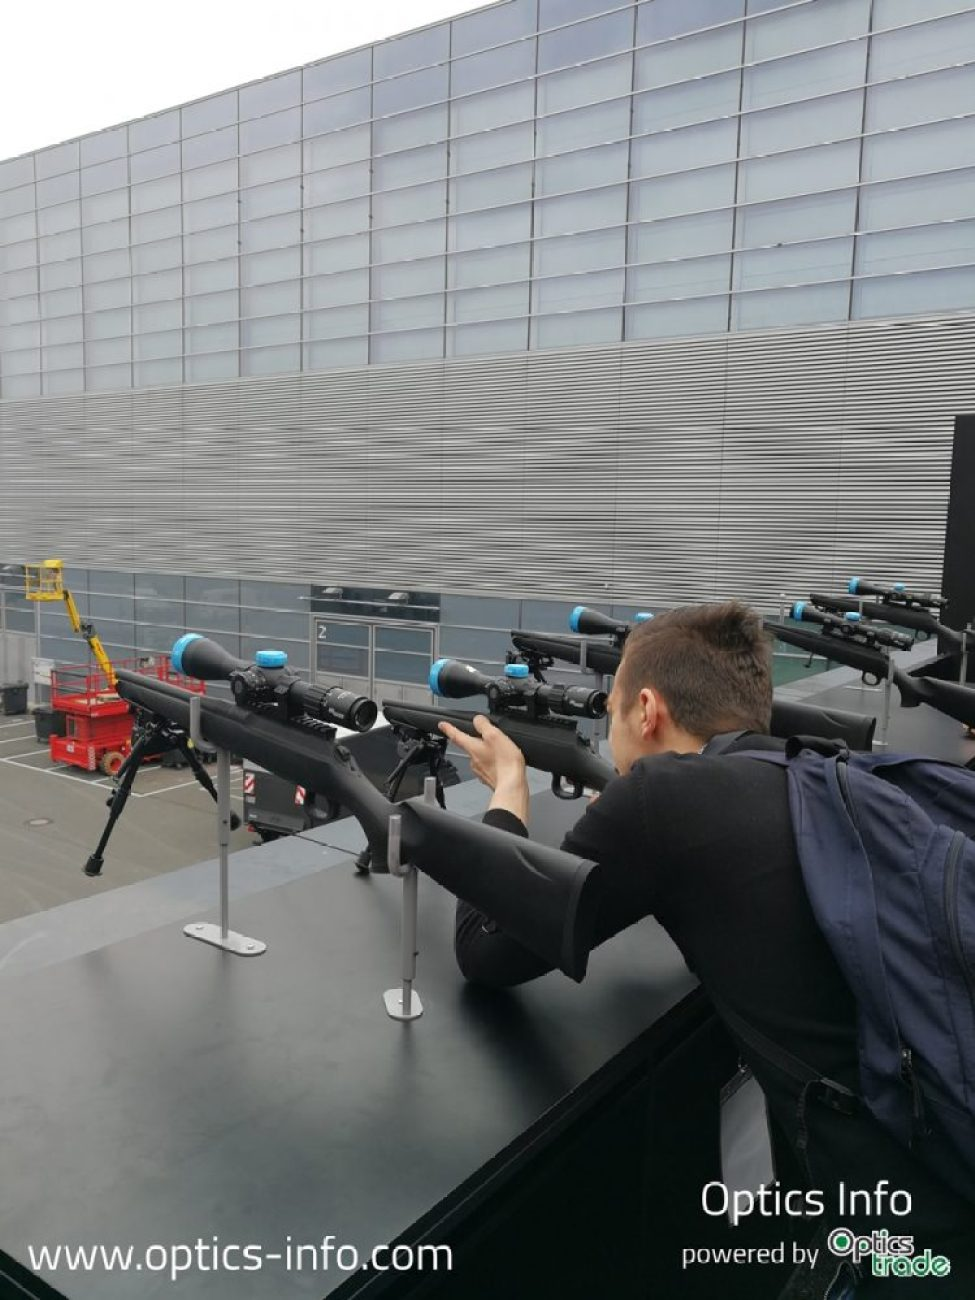 Testing the Sig Sauer BDX technology at IWA 2019